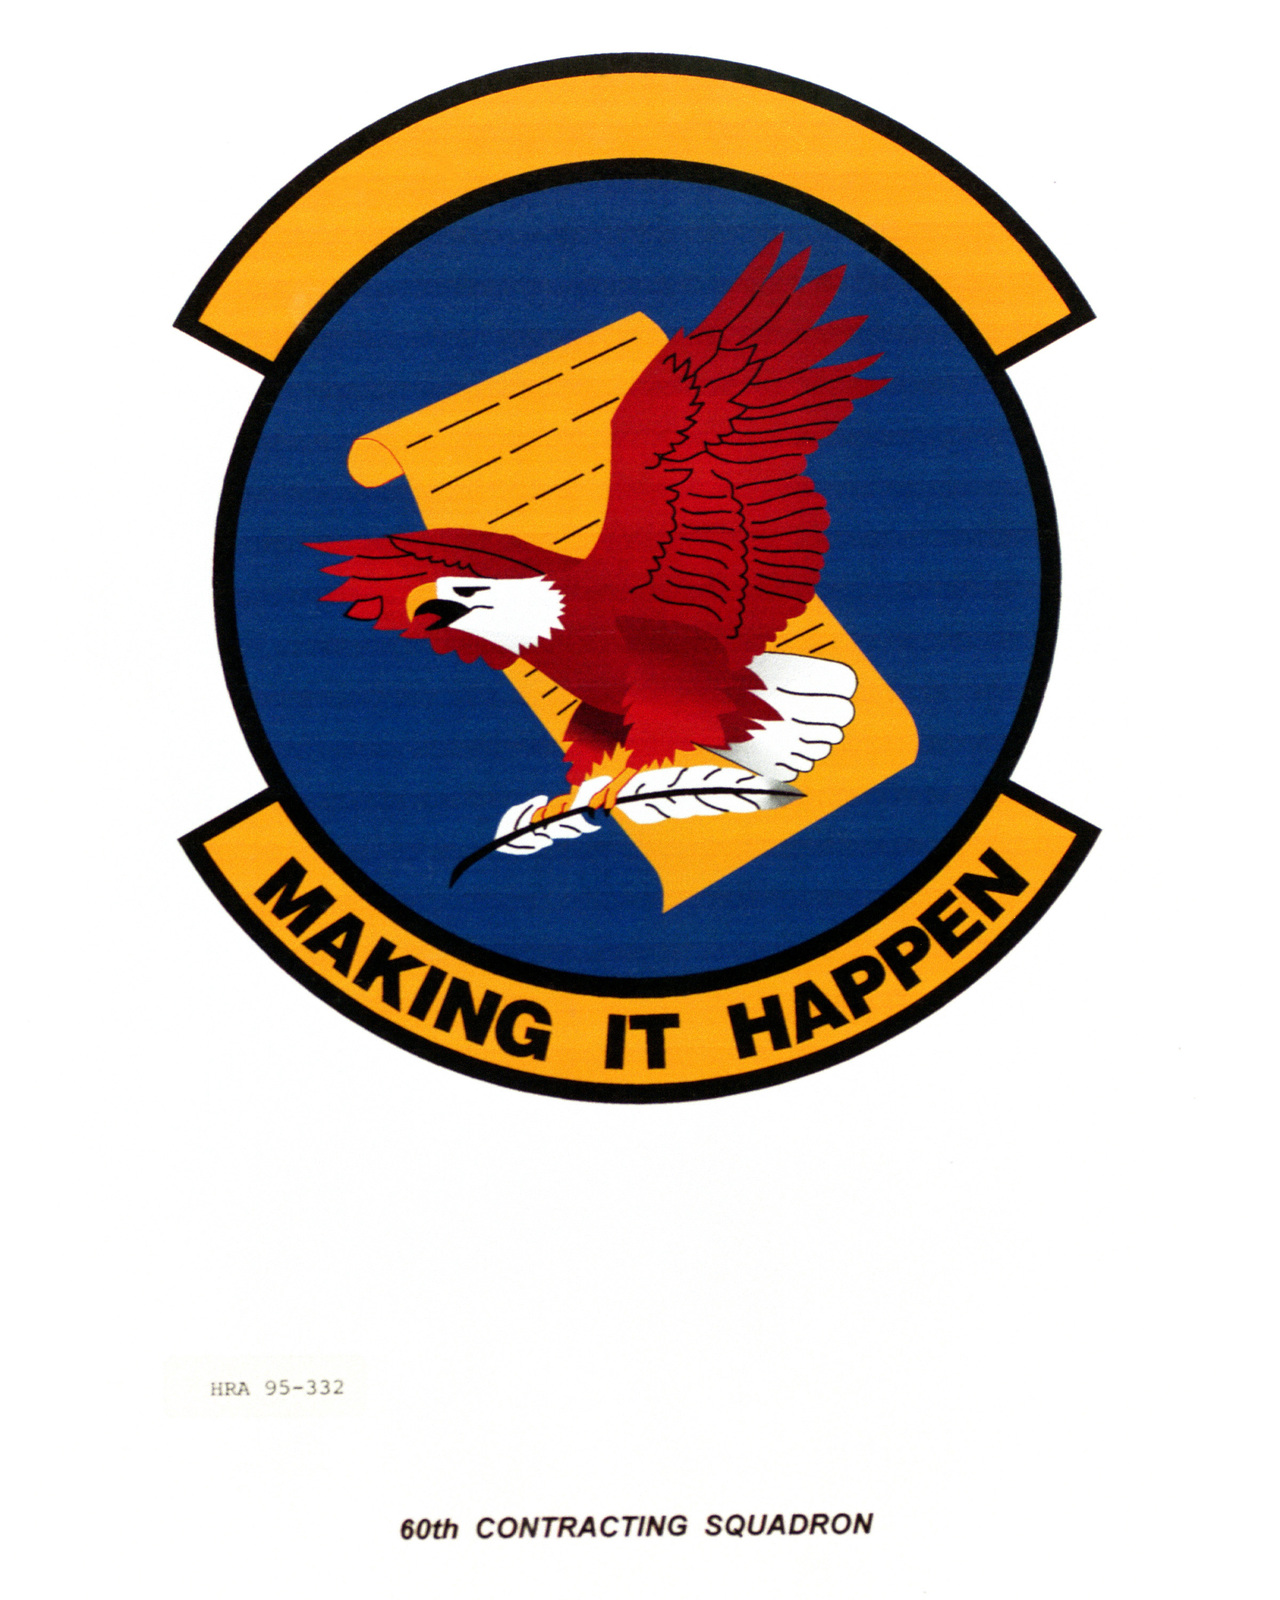 Approved Insignia for the 60th Contracting Squadron Exact Date Shot Unknown